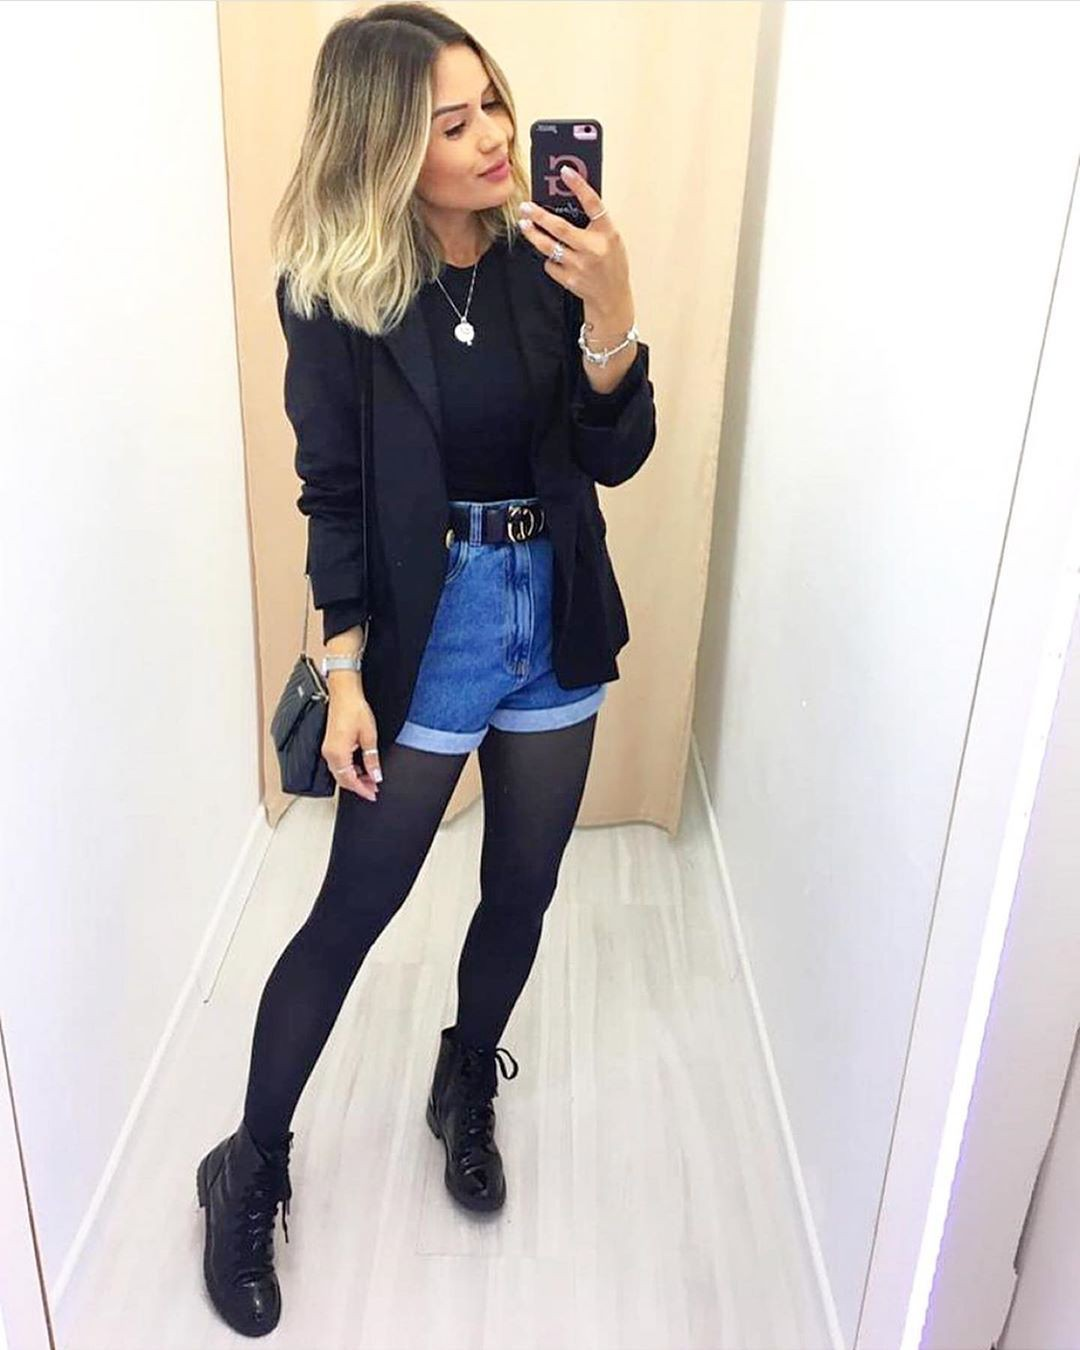 Most liked ideas for look noite barzinho